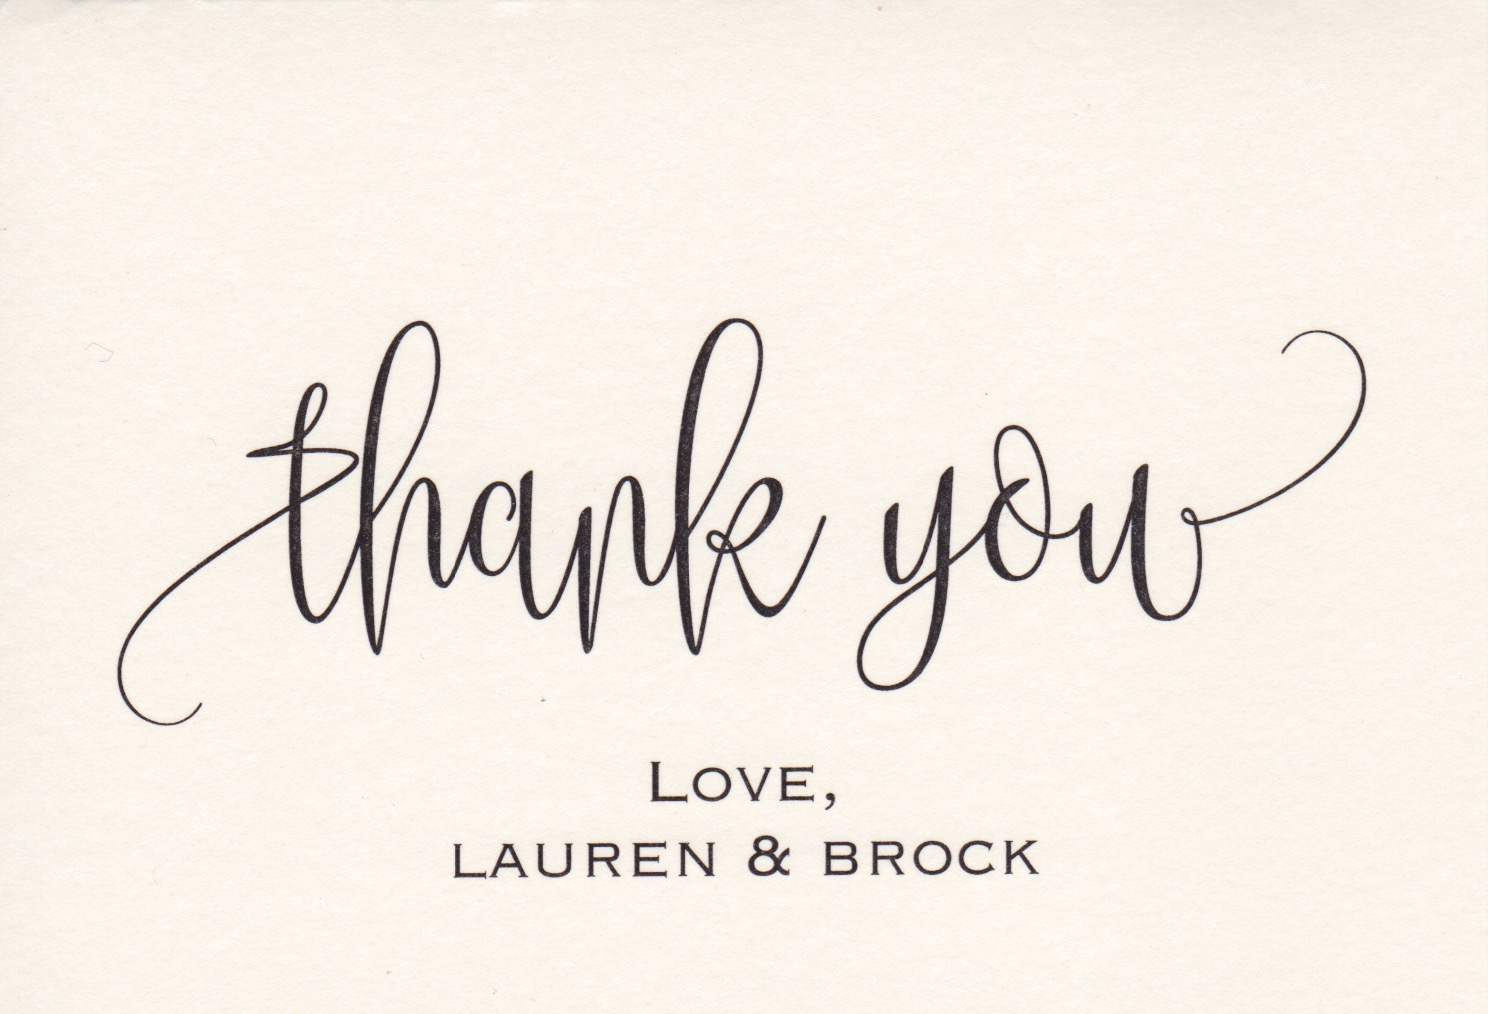 Thank You - Lauren & Brock 2.jpeg